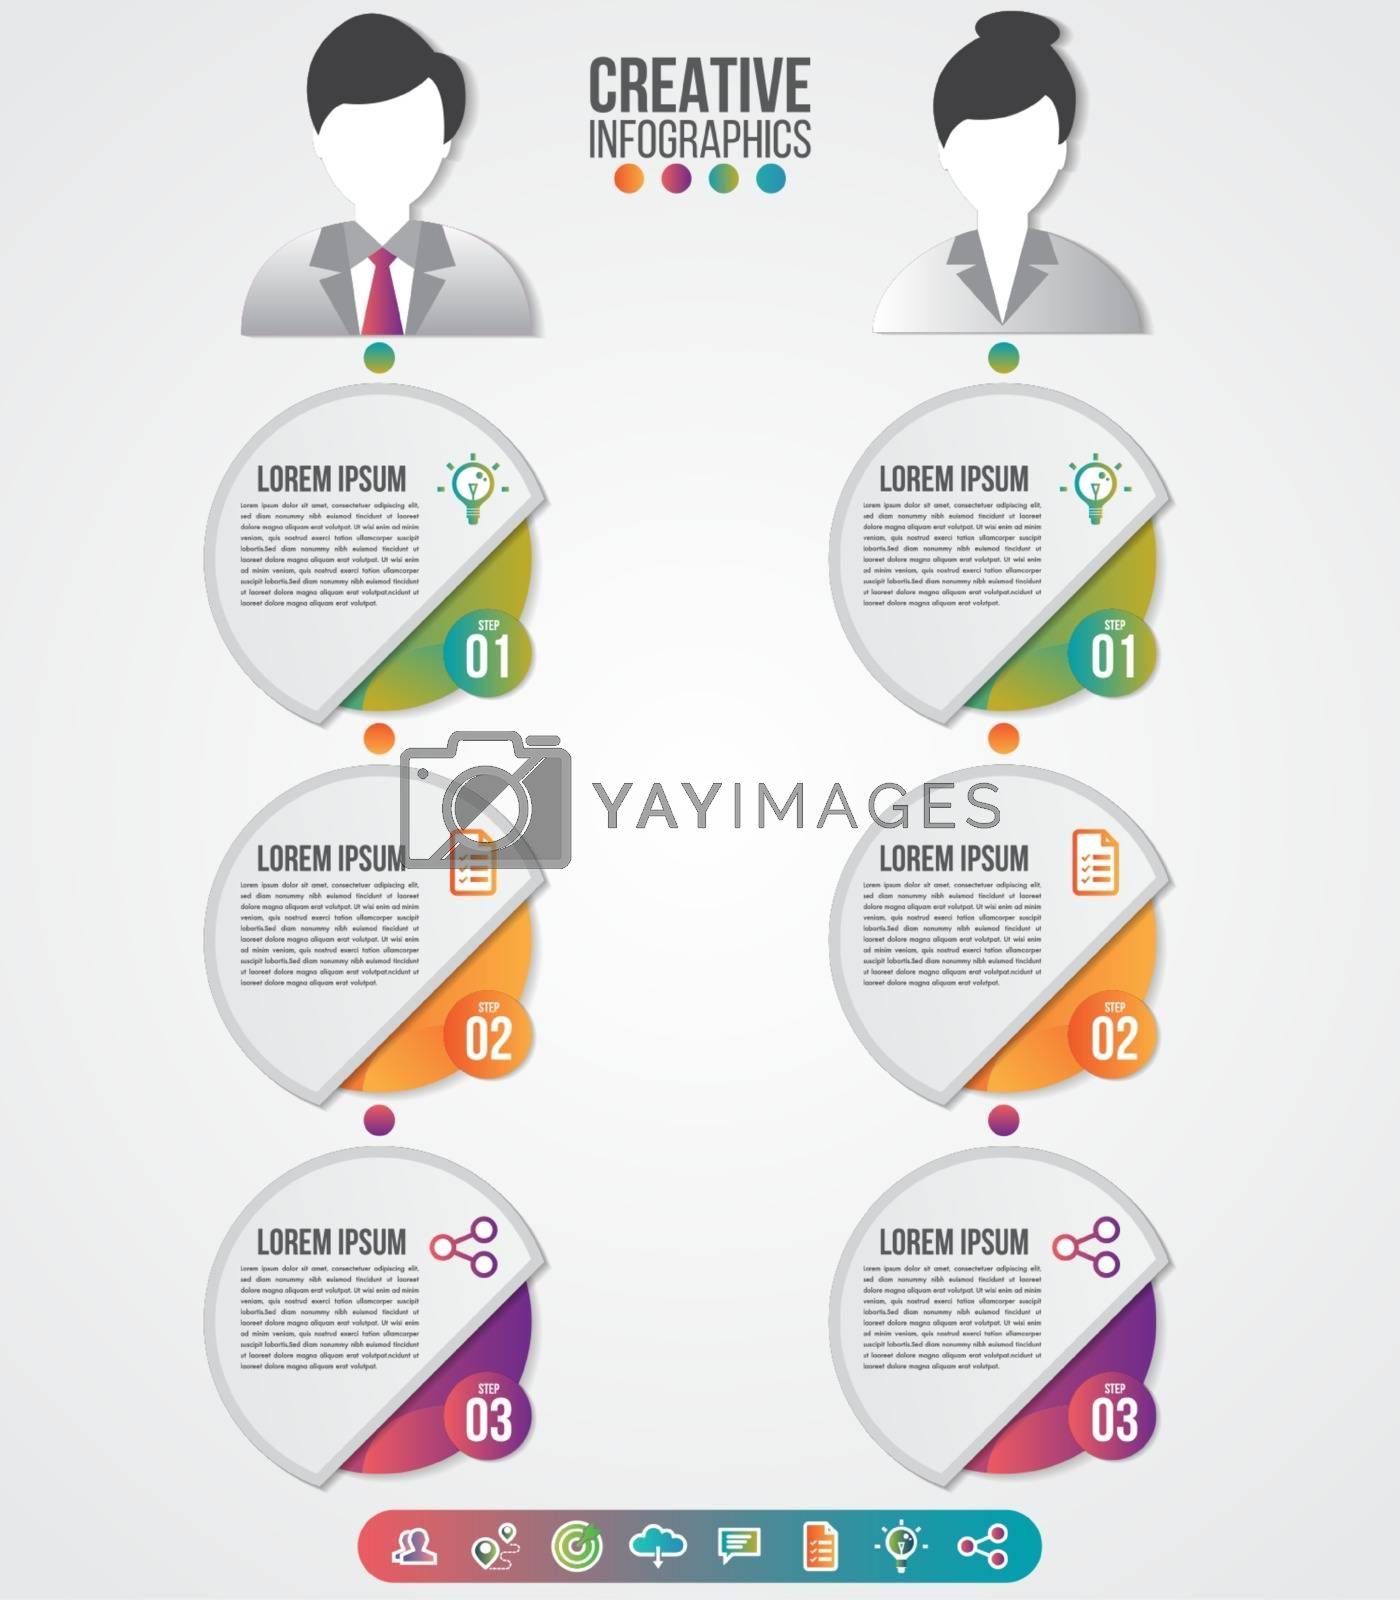 Infographics template men and women symbol avatar with icons set by Zeedoherty